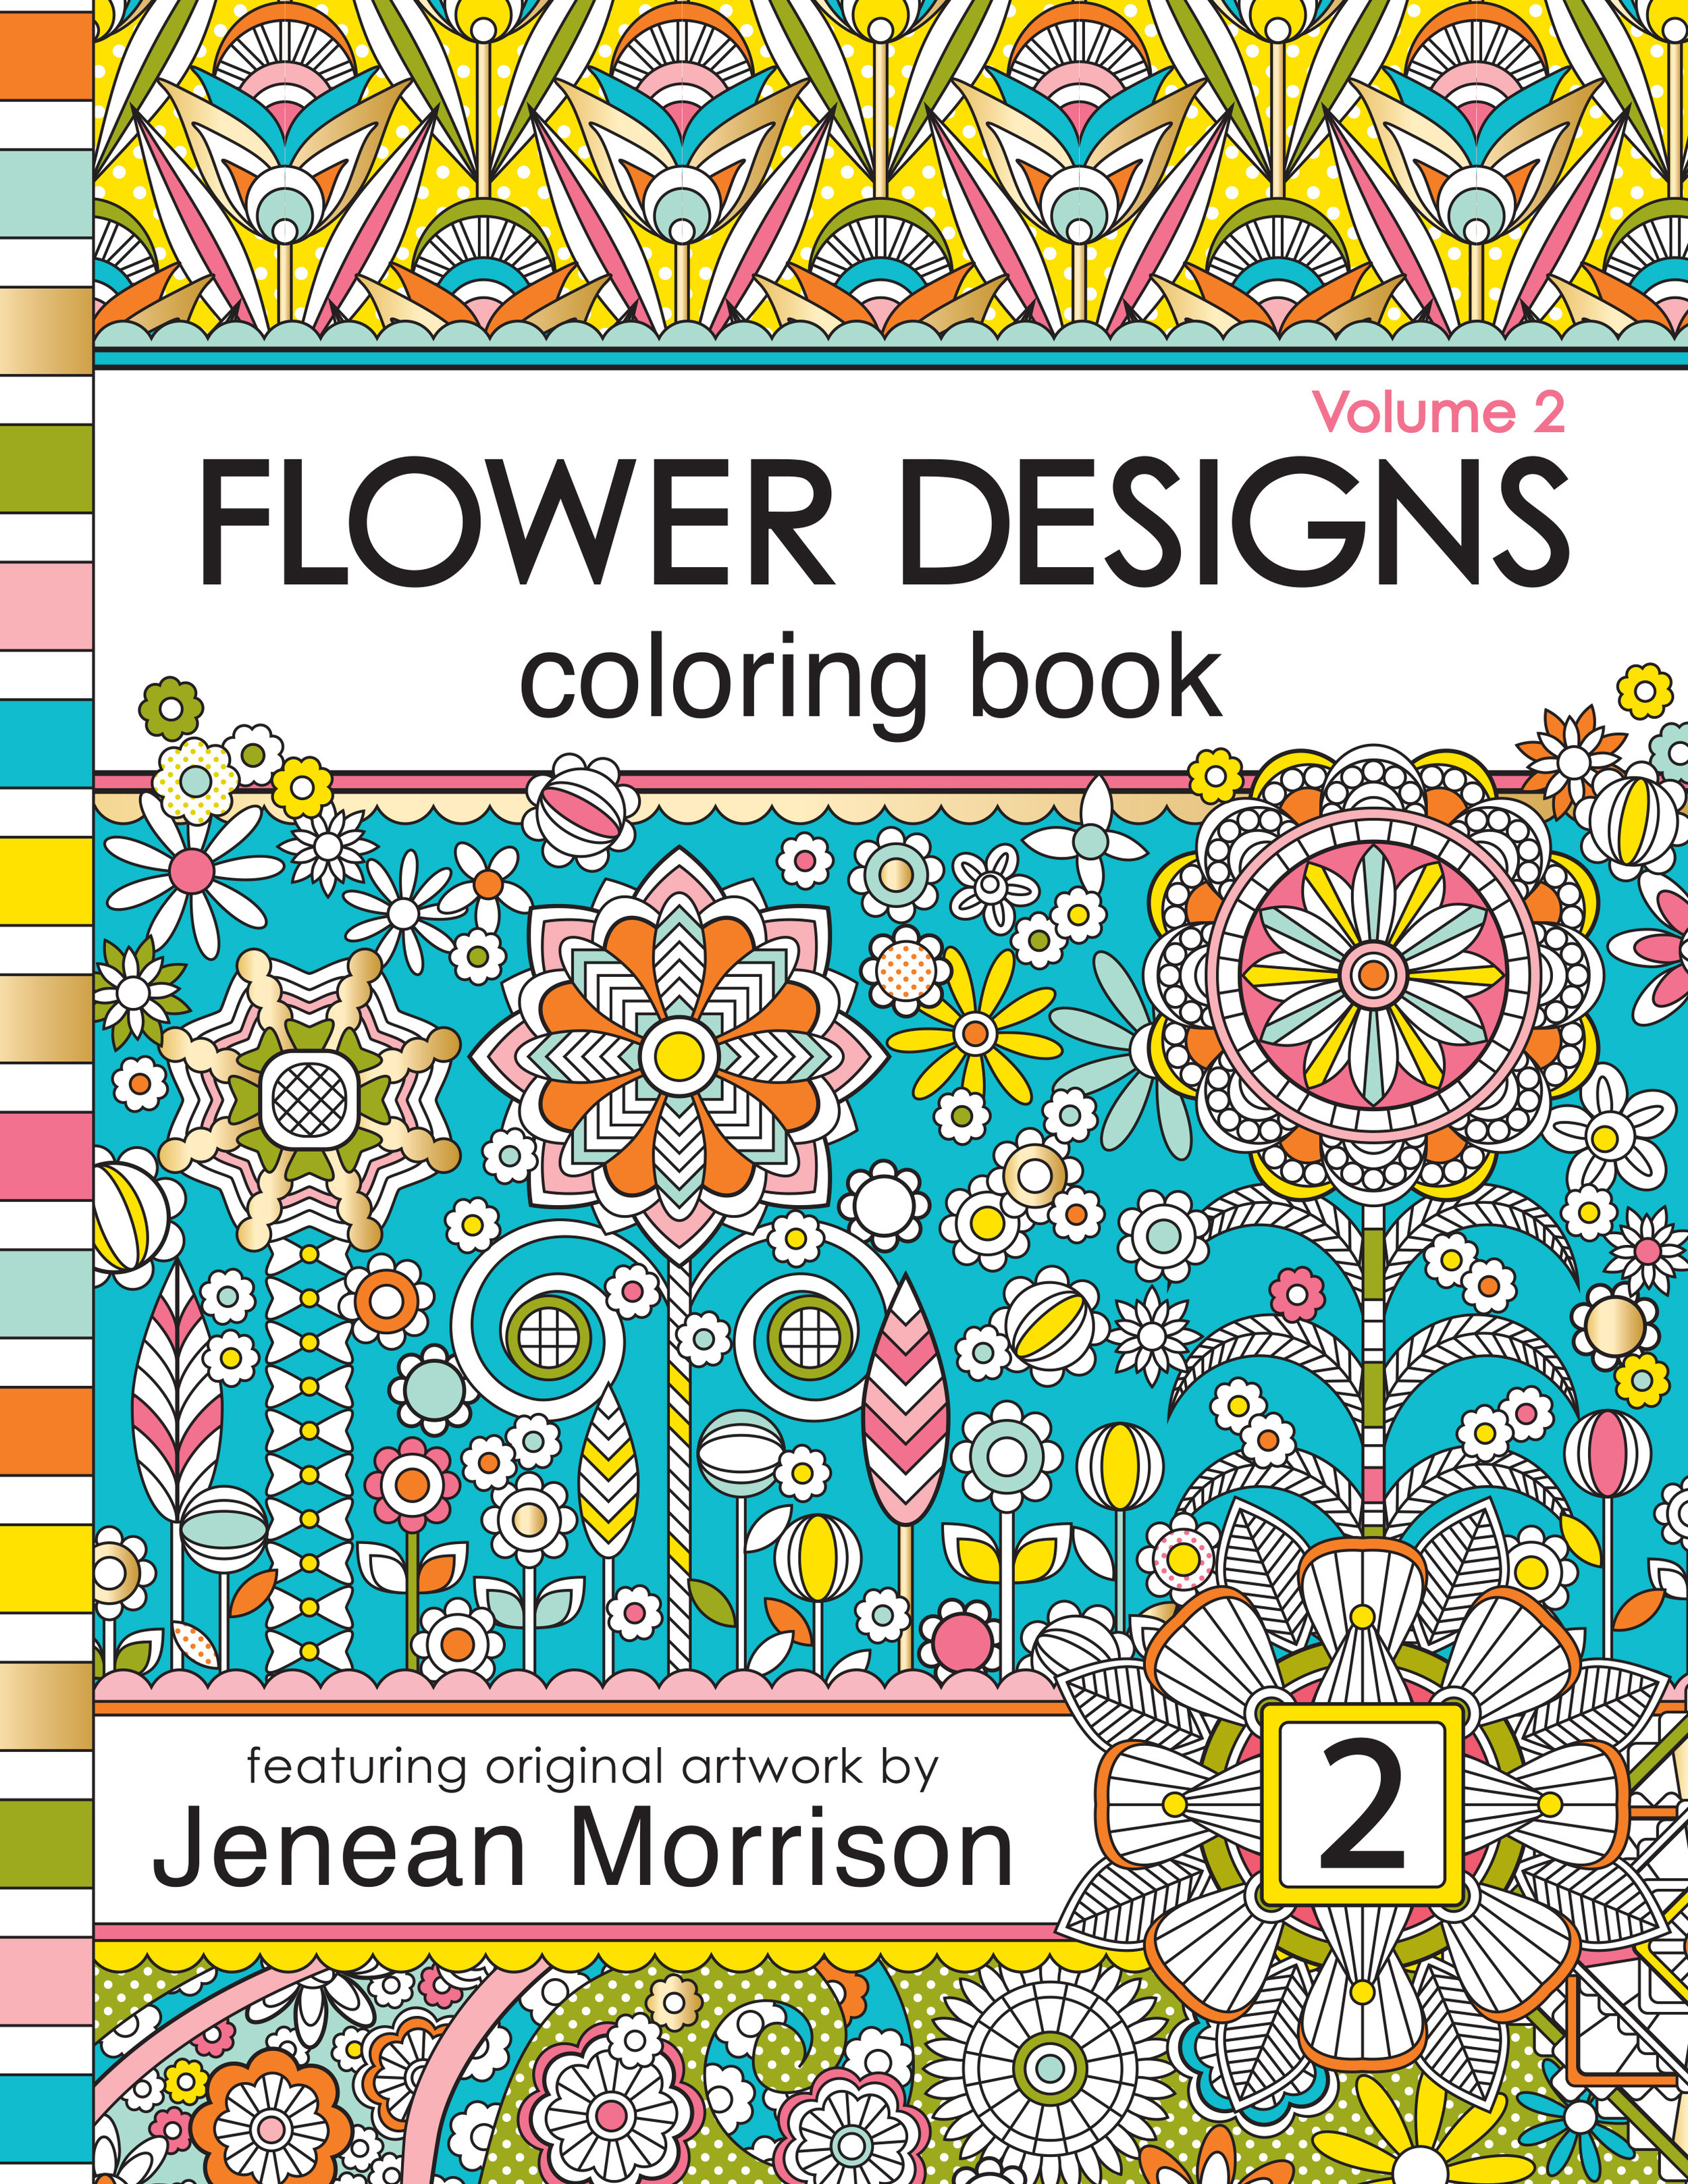 Flower Designs Coloring Book, Volume 2 by Jenean Morrison